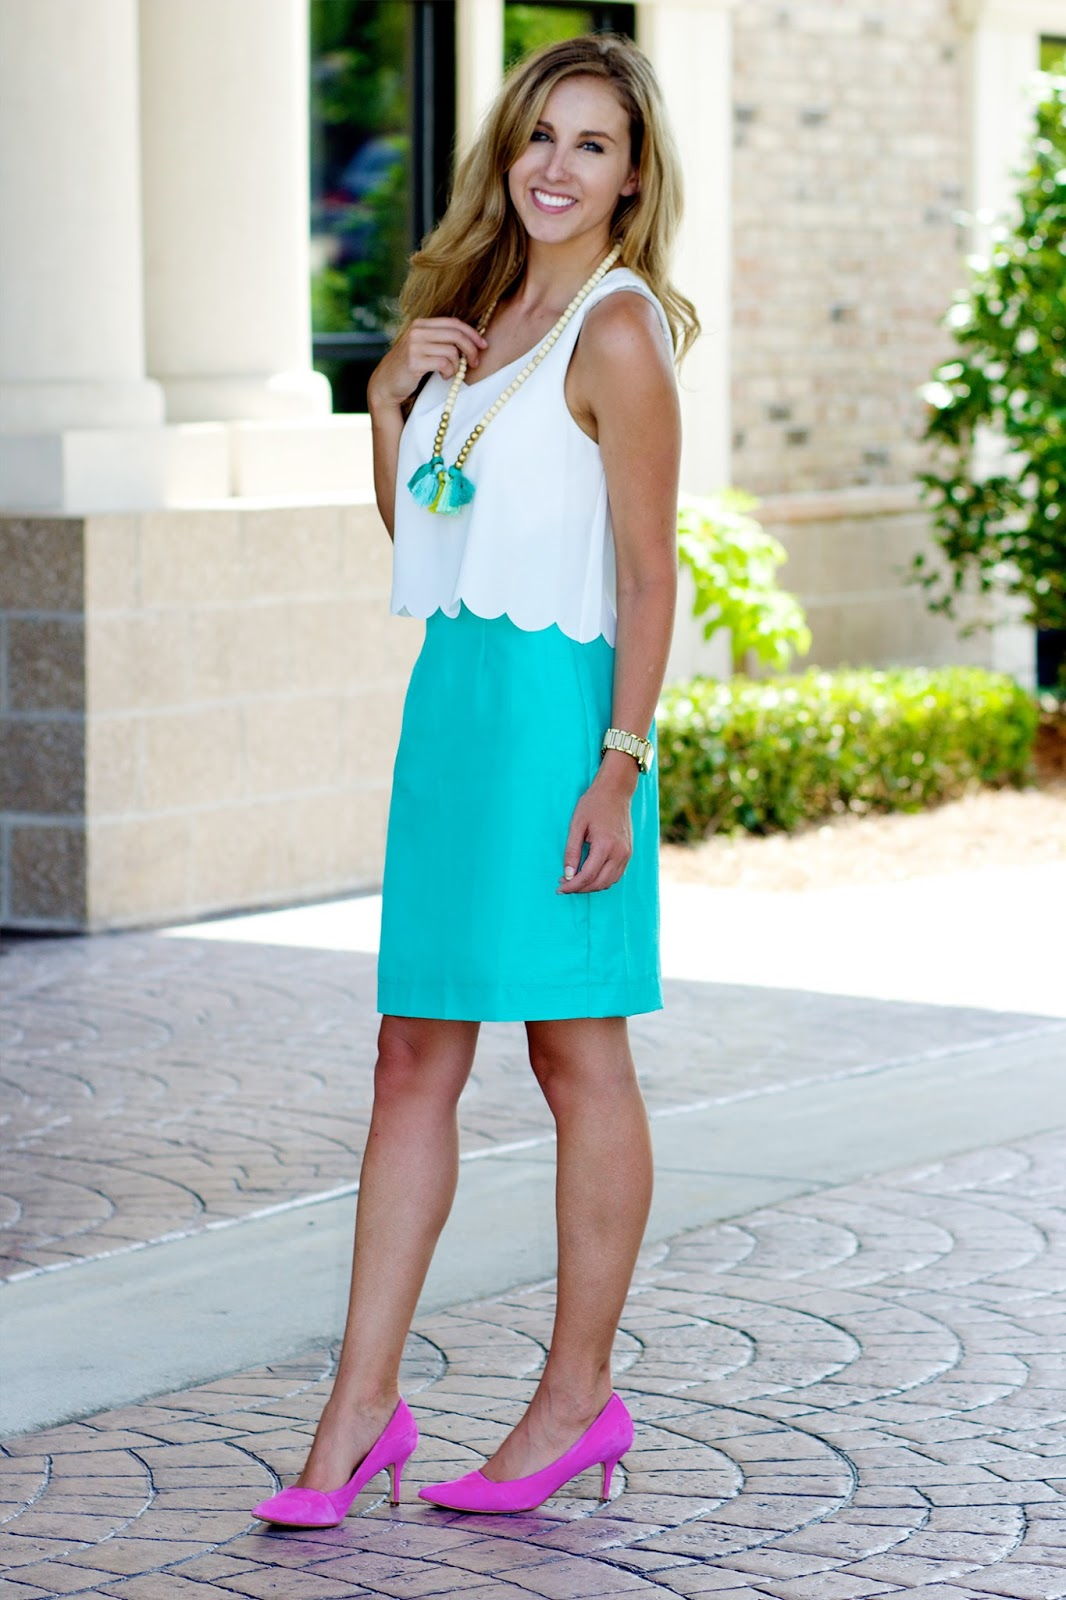 White Scallop Dress Two Ways: Part 1